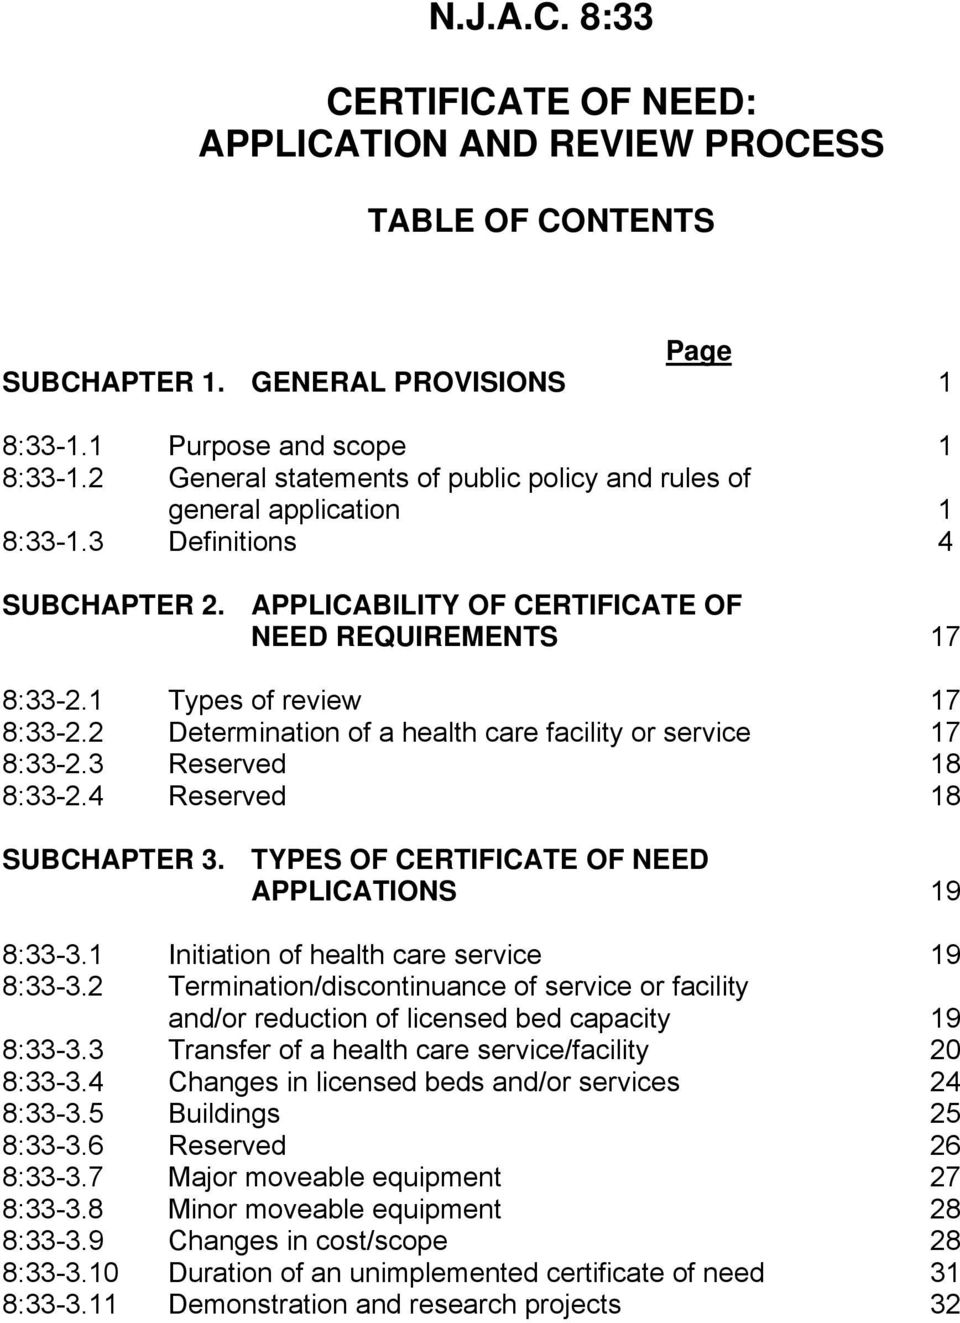 2 Determination of a health care facility or service 17 8:33-2.3 Reserved 18 8:33-2.4 Reserved 18 SUBCHAPTER 3. TYPES OF CERTIFICATE OF NEED APPLICATIONS 19 8:33-3.